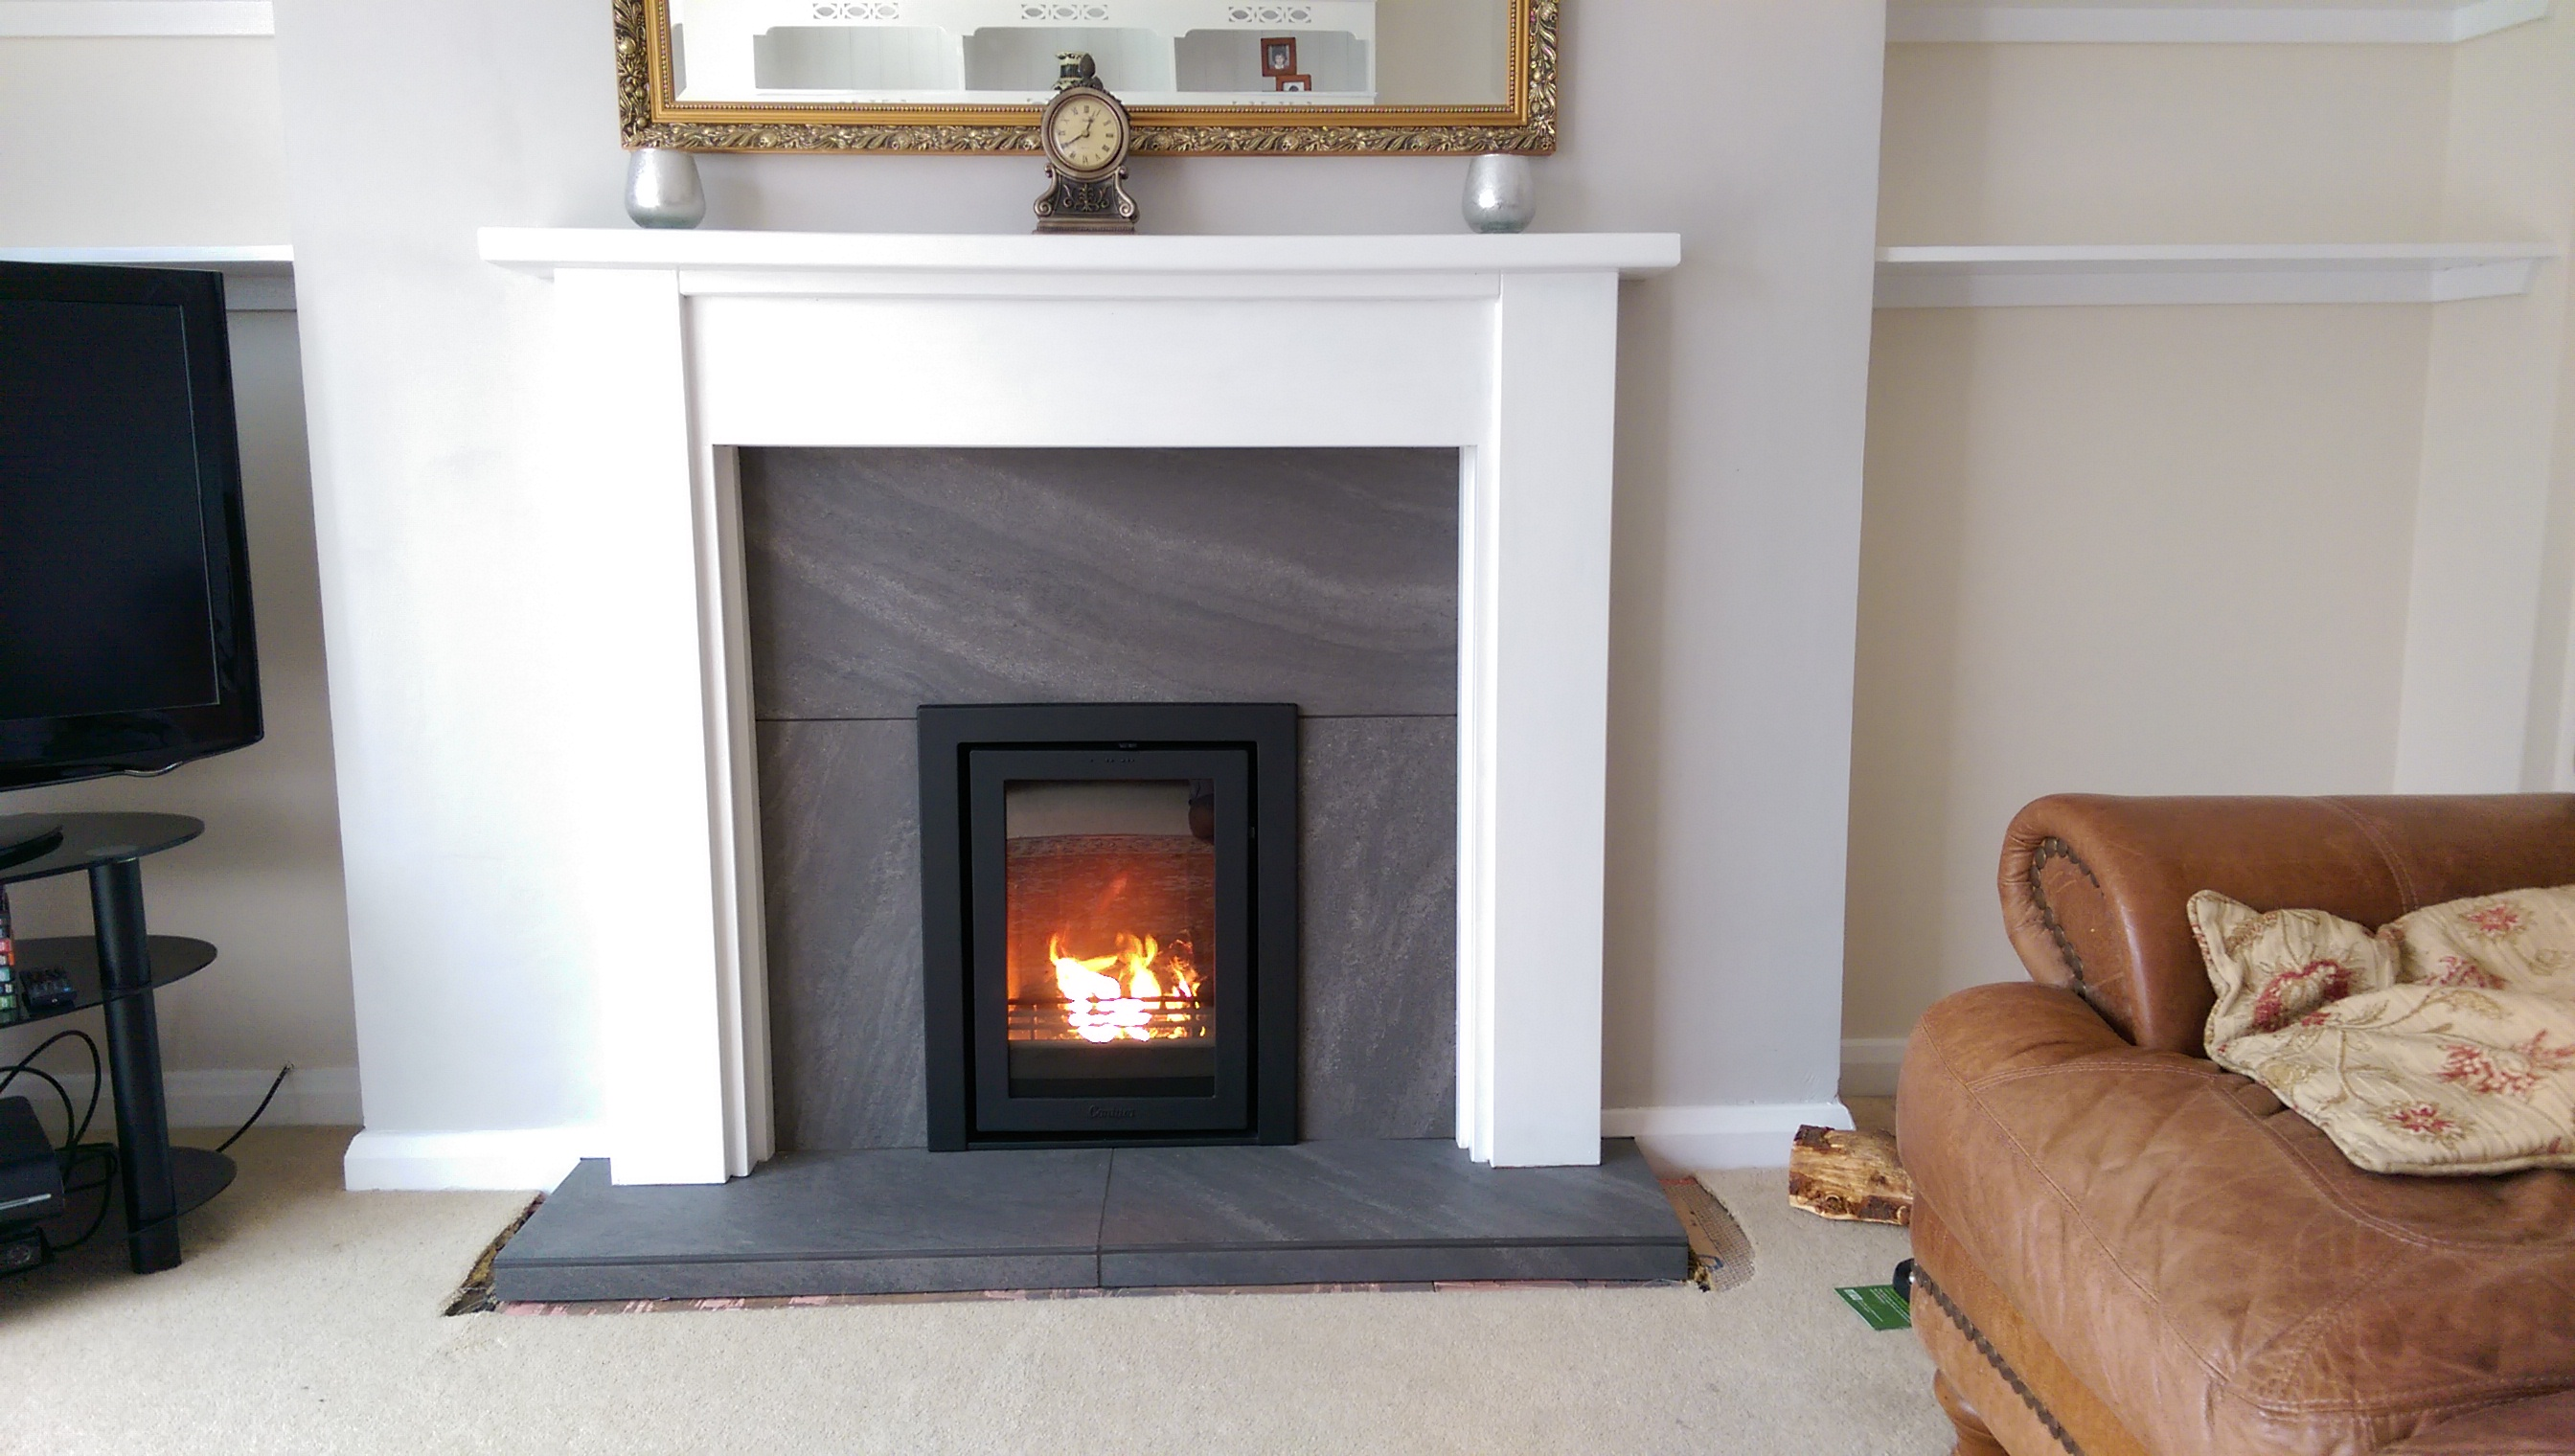 inset wood burning stove